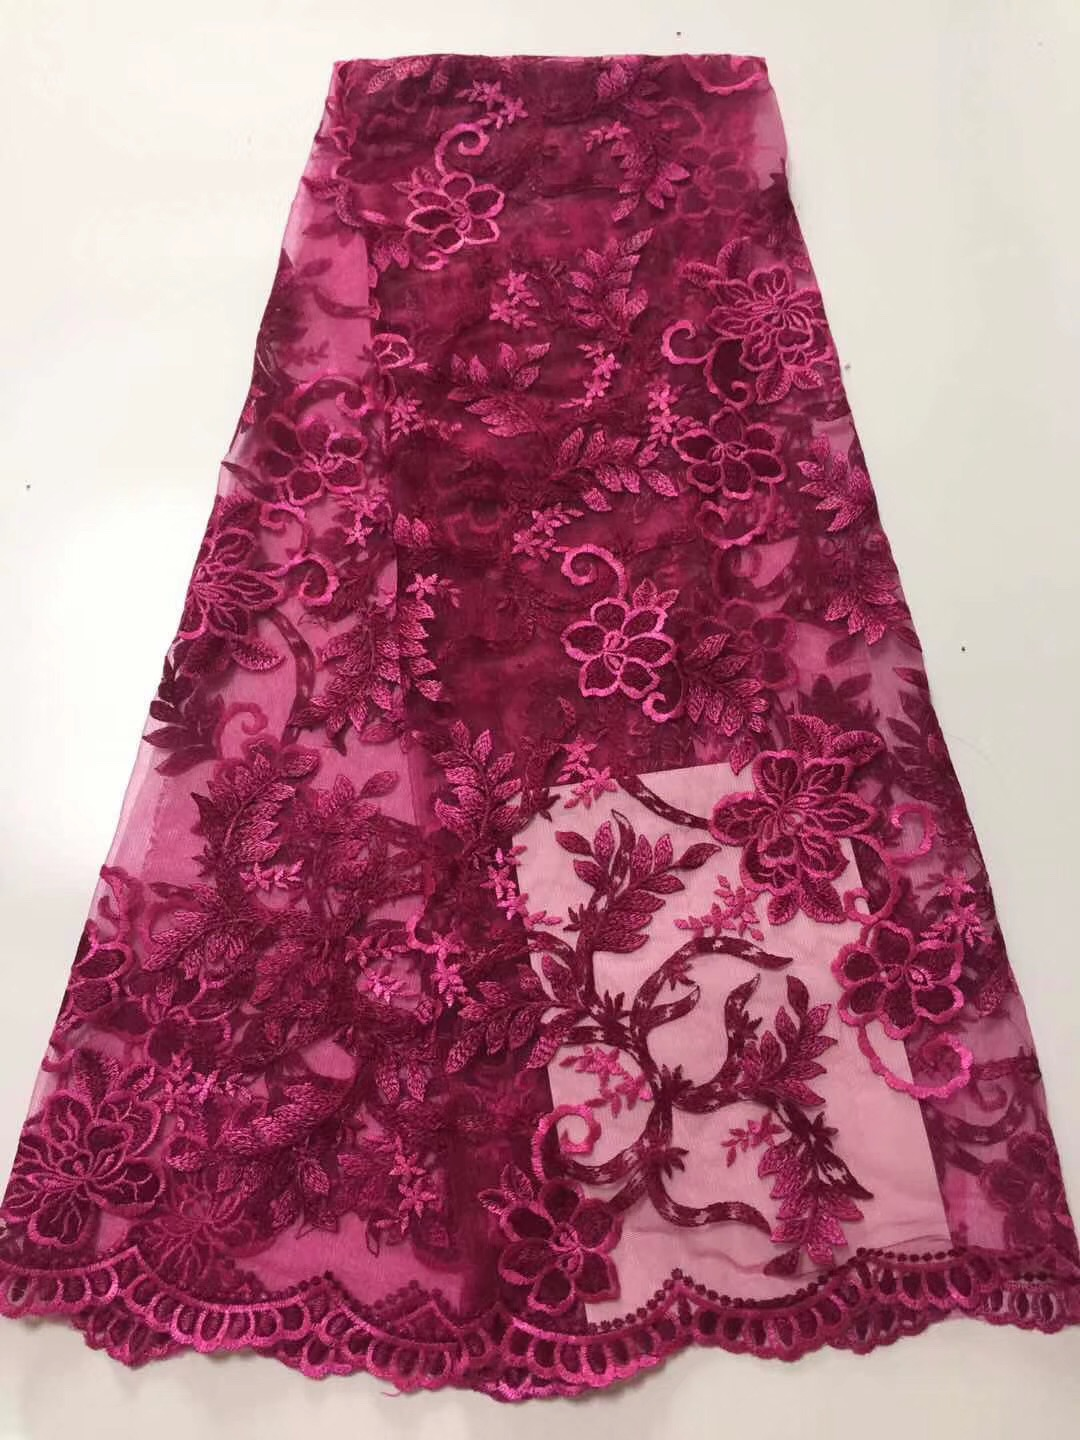 African Swiss Lace Fabric 2019 High Quality Swiss Voile Lace In Switzerland Pruple Cotton African Dresses For Women DressAfrican Swiss Lace Fabric 2019 High Quality Swiss Voile Lace In Switzerland Pruple Cotton African Dresses For Women Dress